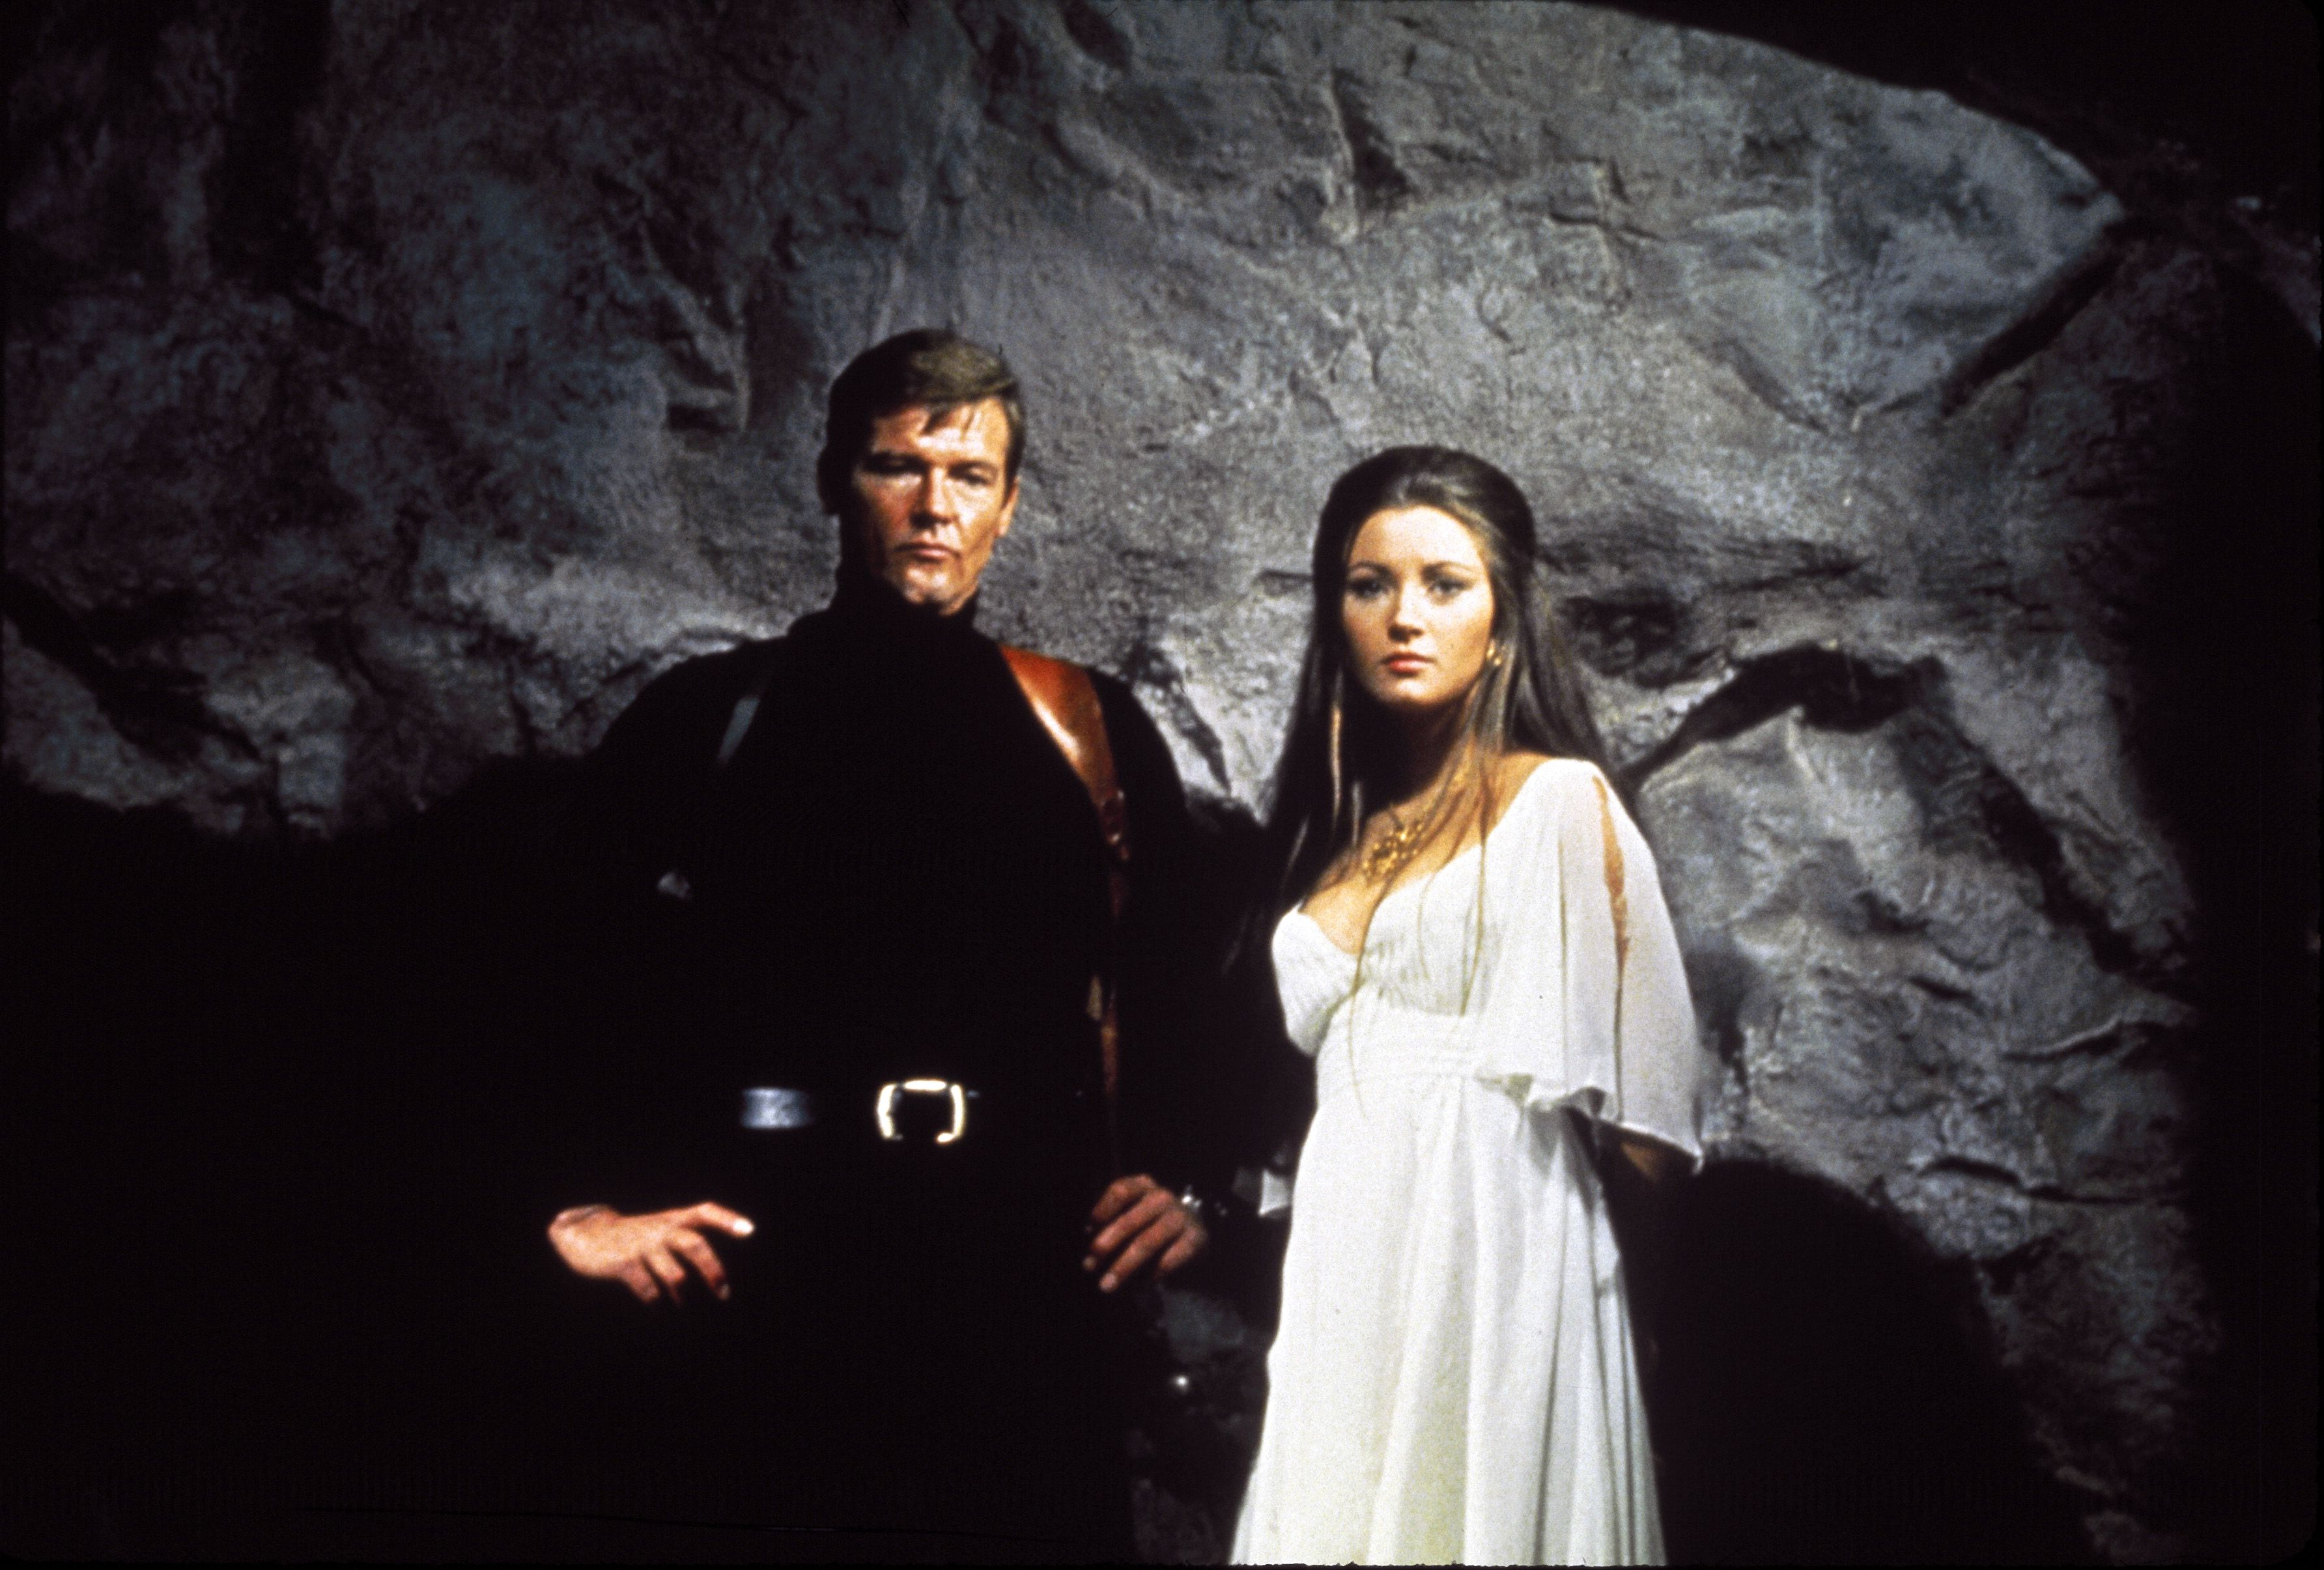 Jane Seymour And Roger Moore 3568x2411 Pixels 007 Live And